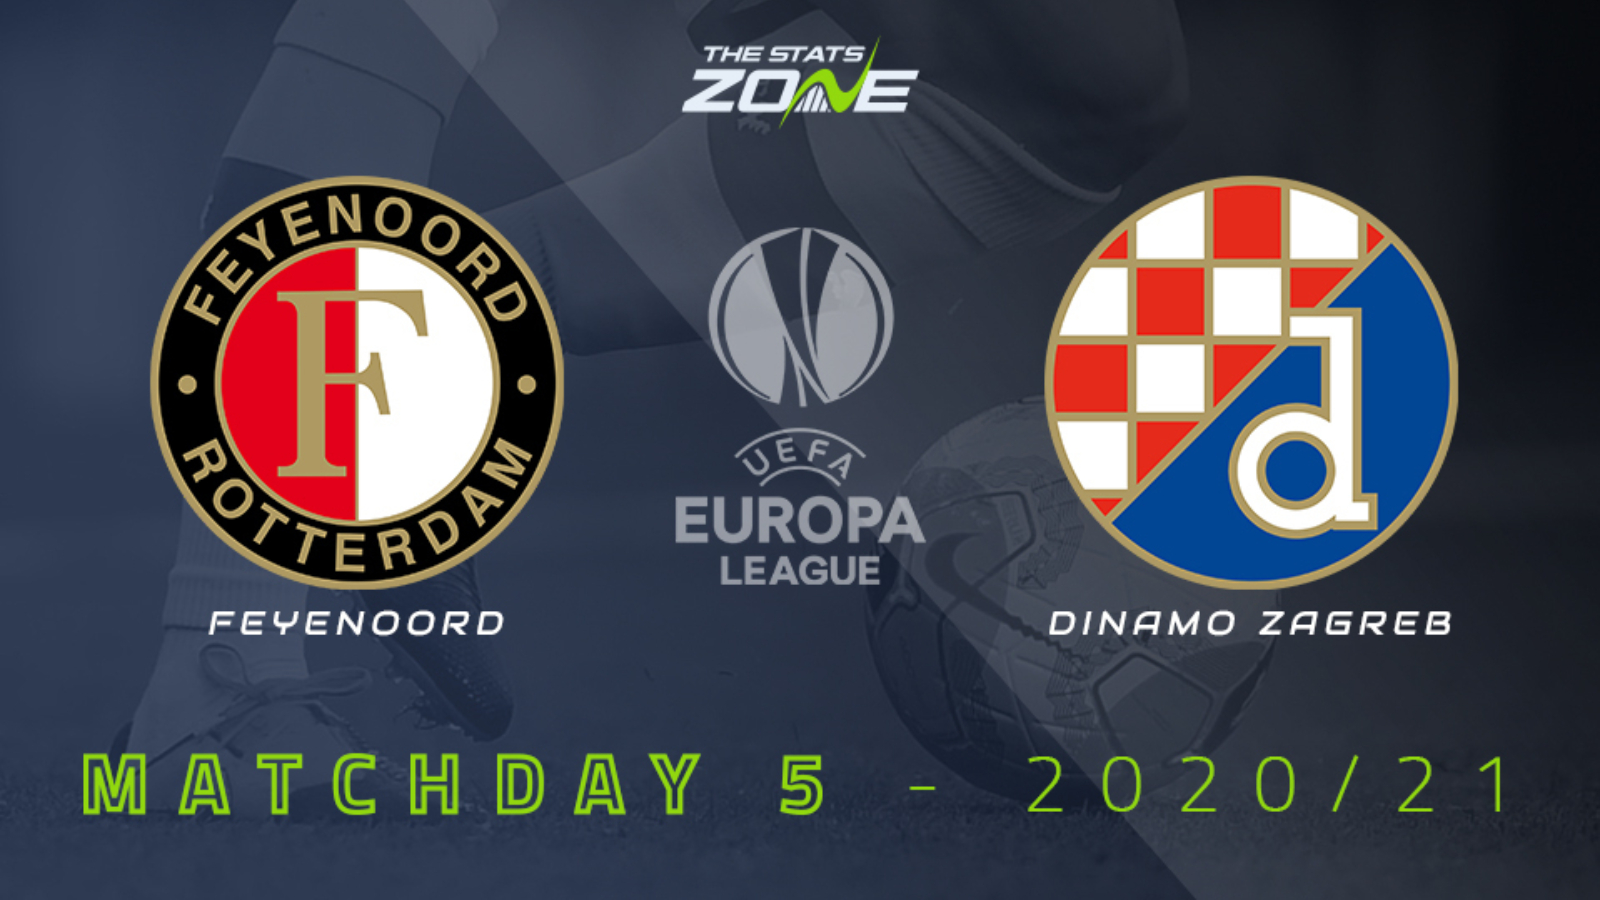 2020 21 Uefa Europa League Feyenoord Vs Dinamo Zagreb Preview Prediction The Stats Zone